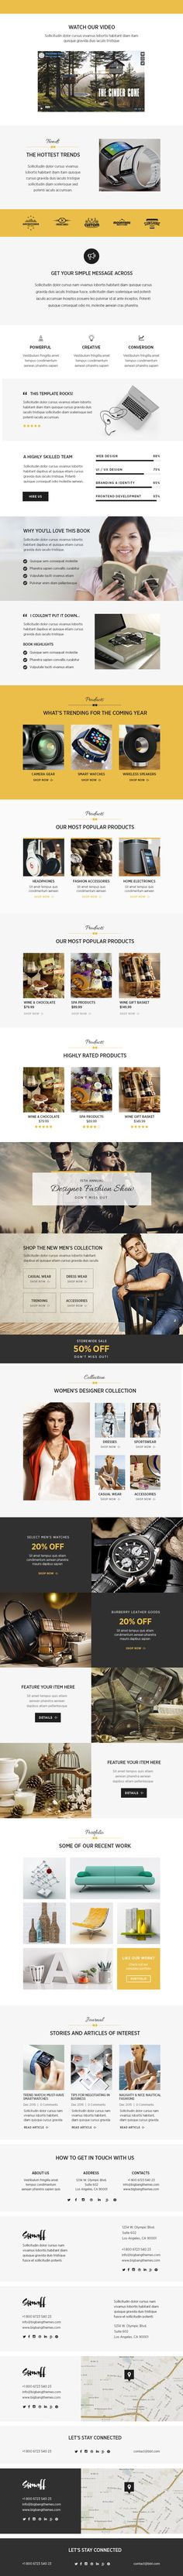 Showoff - Stylish Multipurpose Email + Builder Access - Marketing